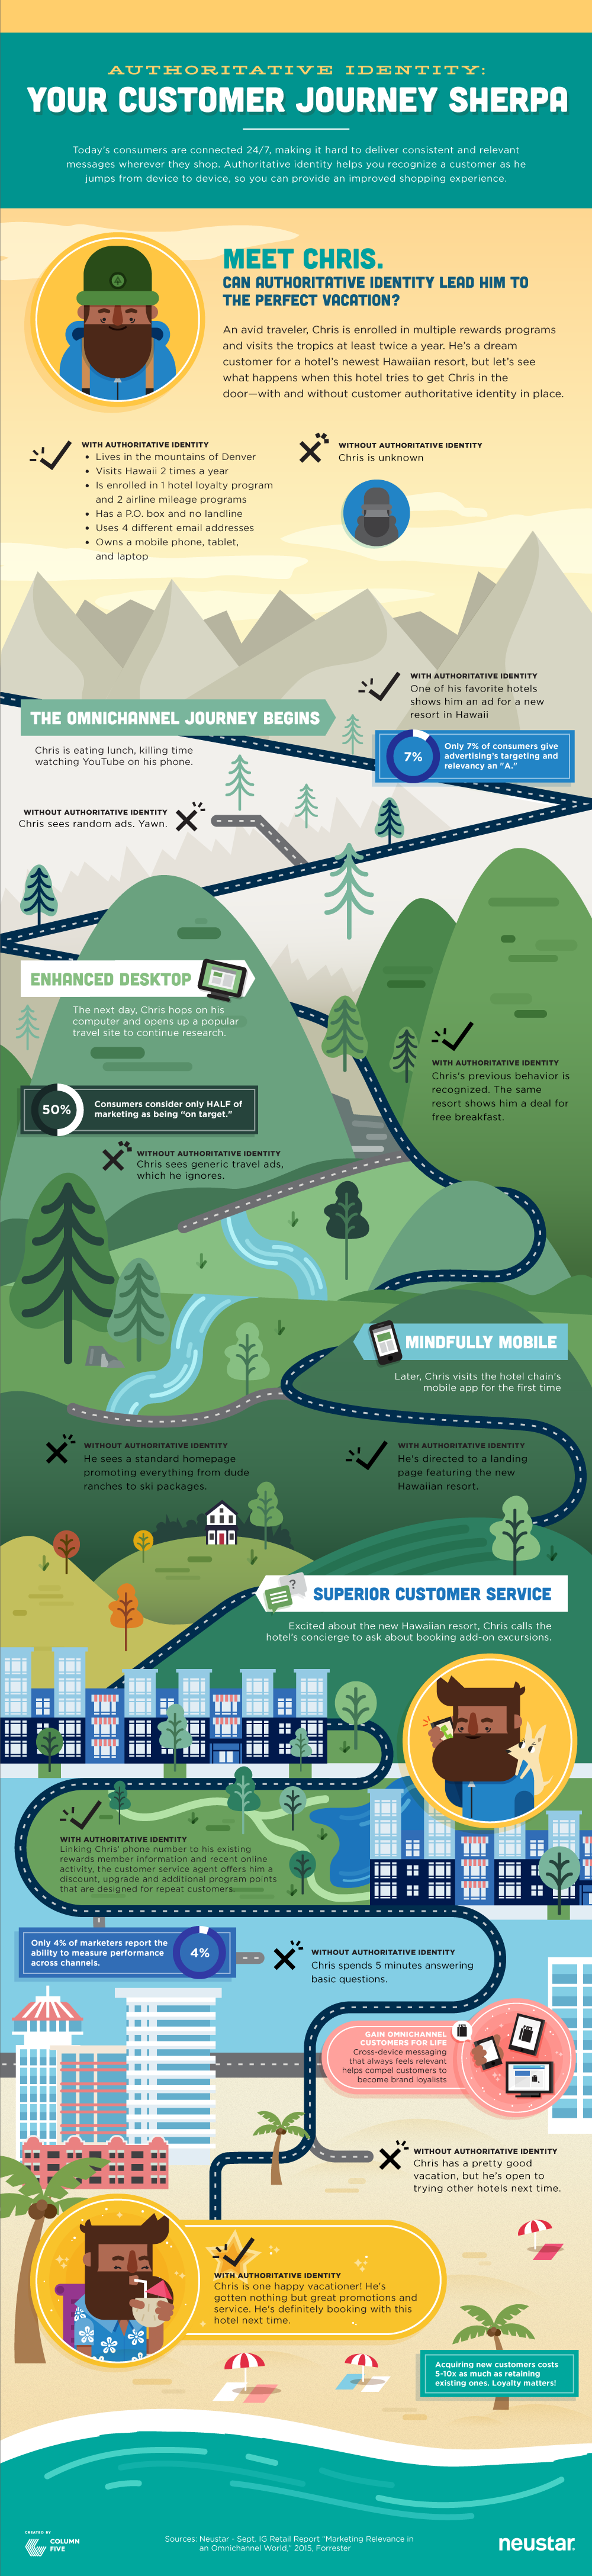 Authoritative Identity: Your Customer Journey Sherpa Infographic